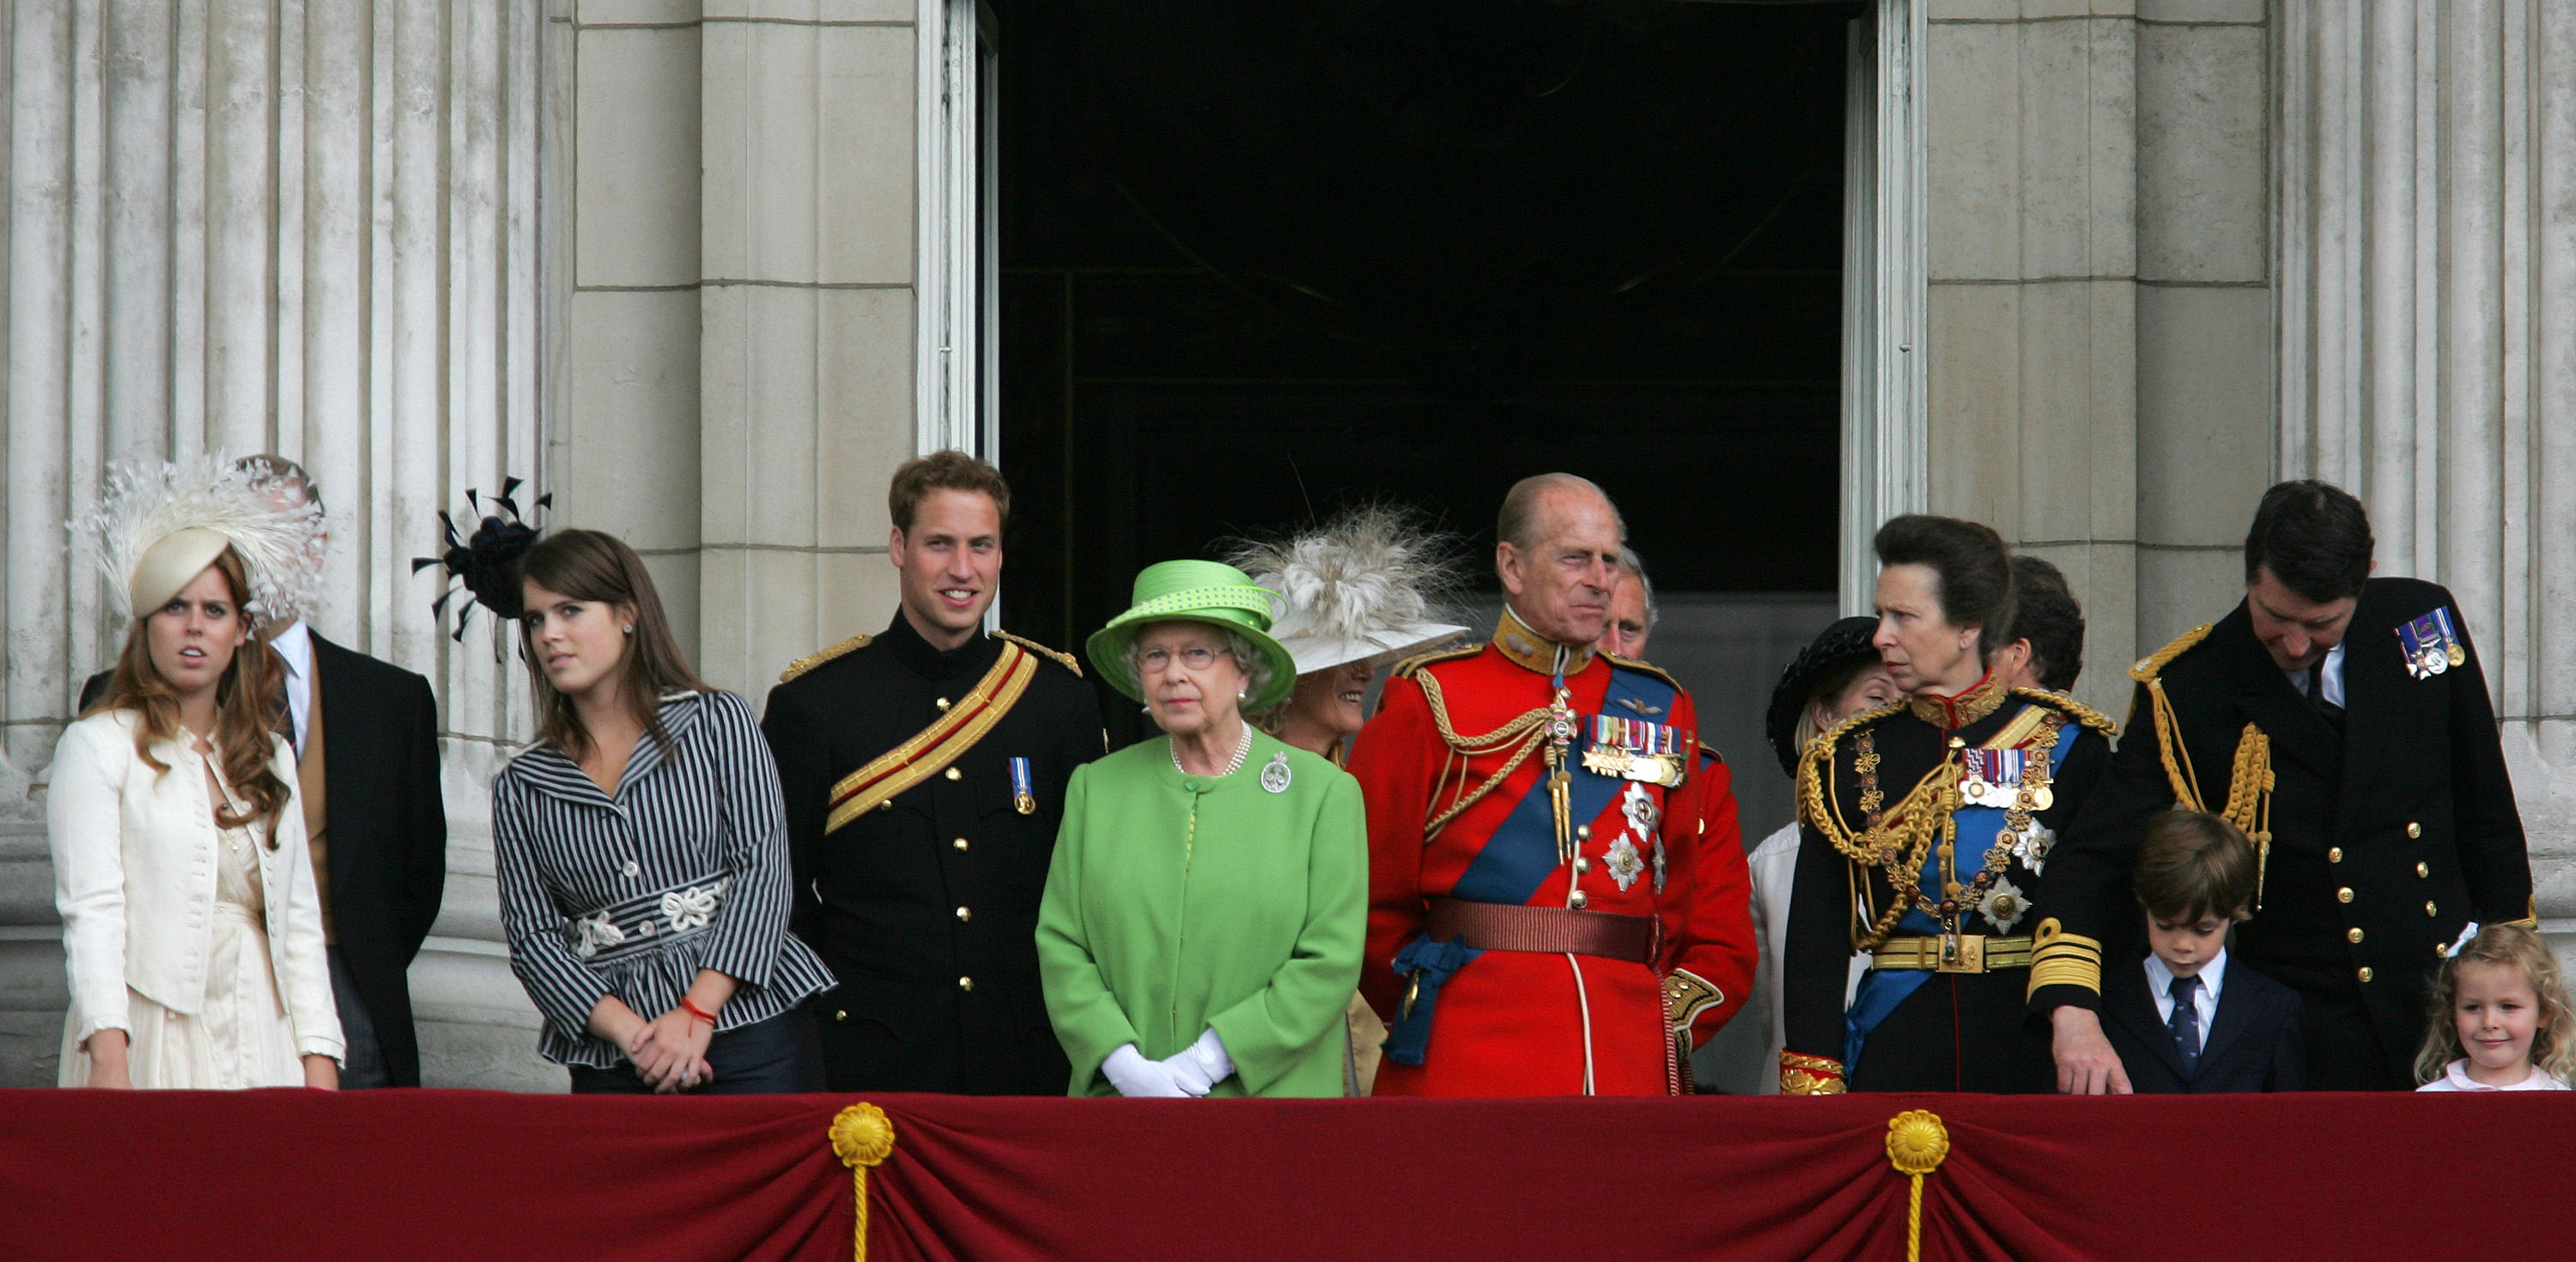 Trooping the Colour 2019 parade marks Queen Elizabeth II's